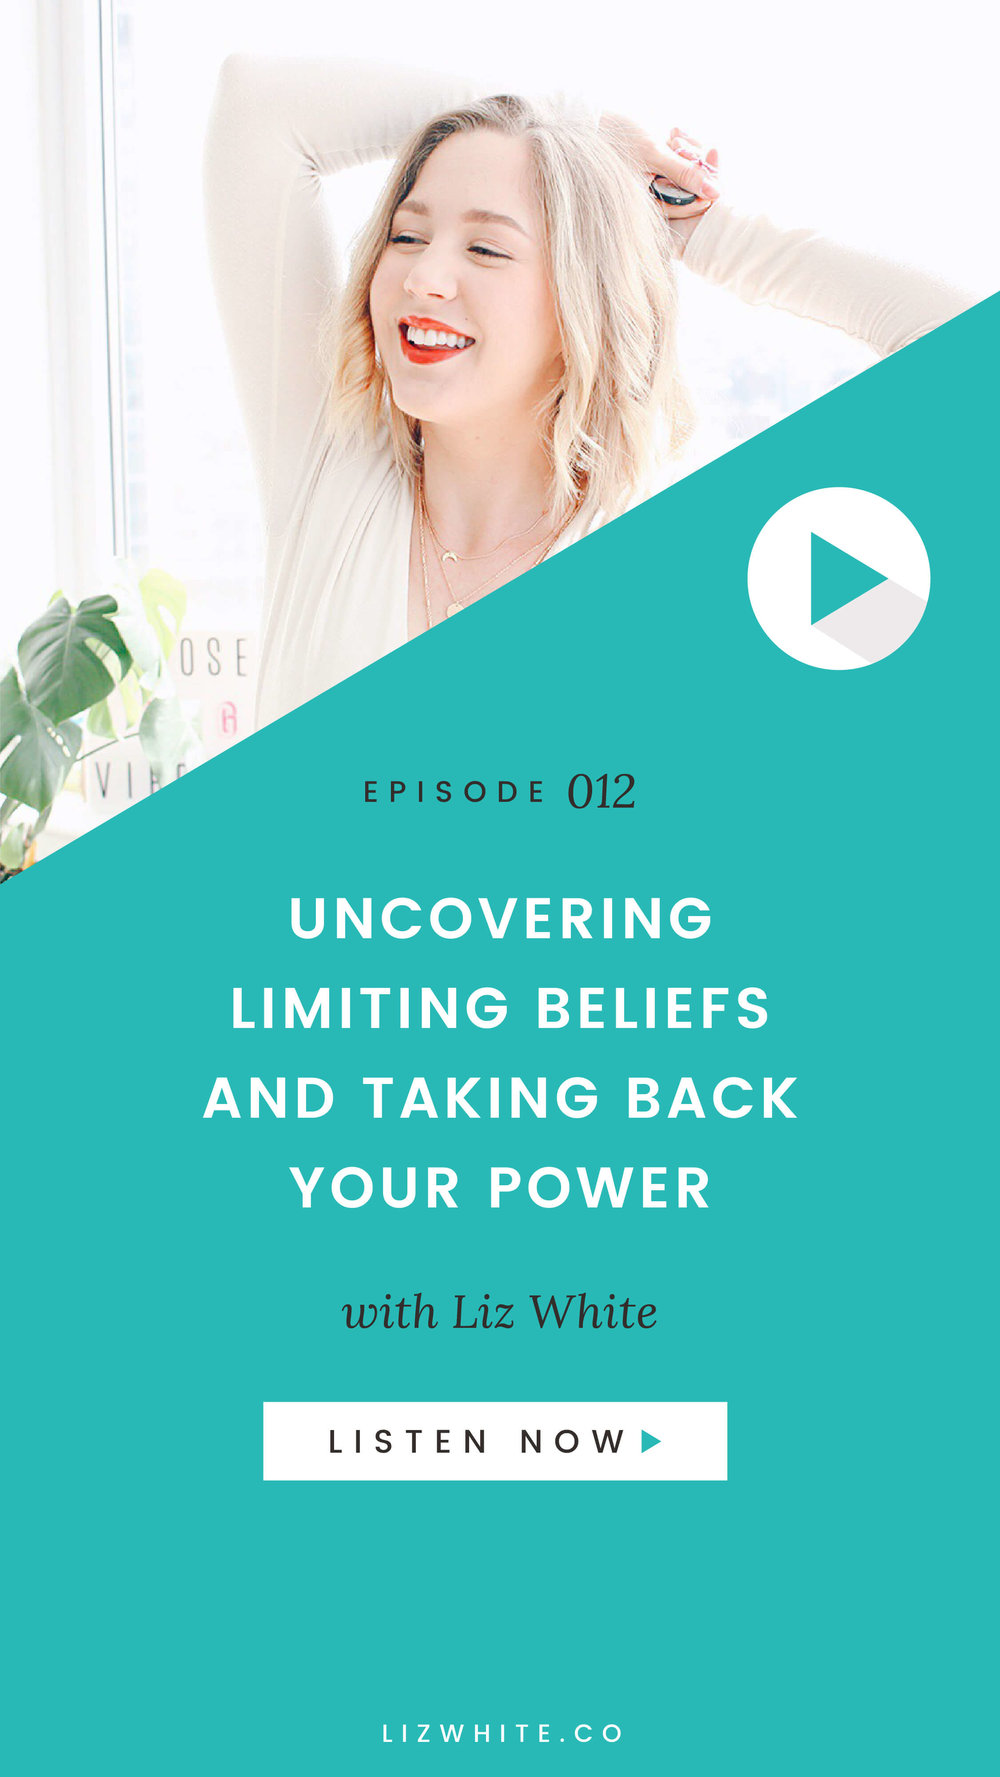 This episode dives into a major ah-ha moment I had about a limiting belief that was destroying my power and confidence, which in turn gave me back control over the TRUE narrative and understanding. TBH, I wasn't going to share this. But ignoring my ego is what I'm learning to do, and I know the message in this episode is meant to be shared.